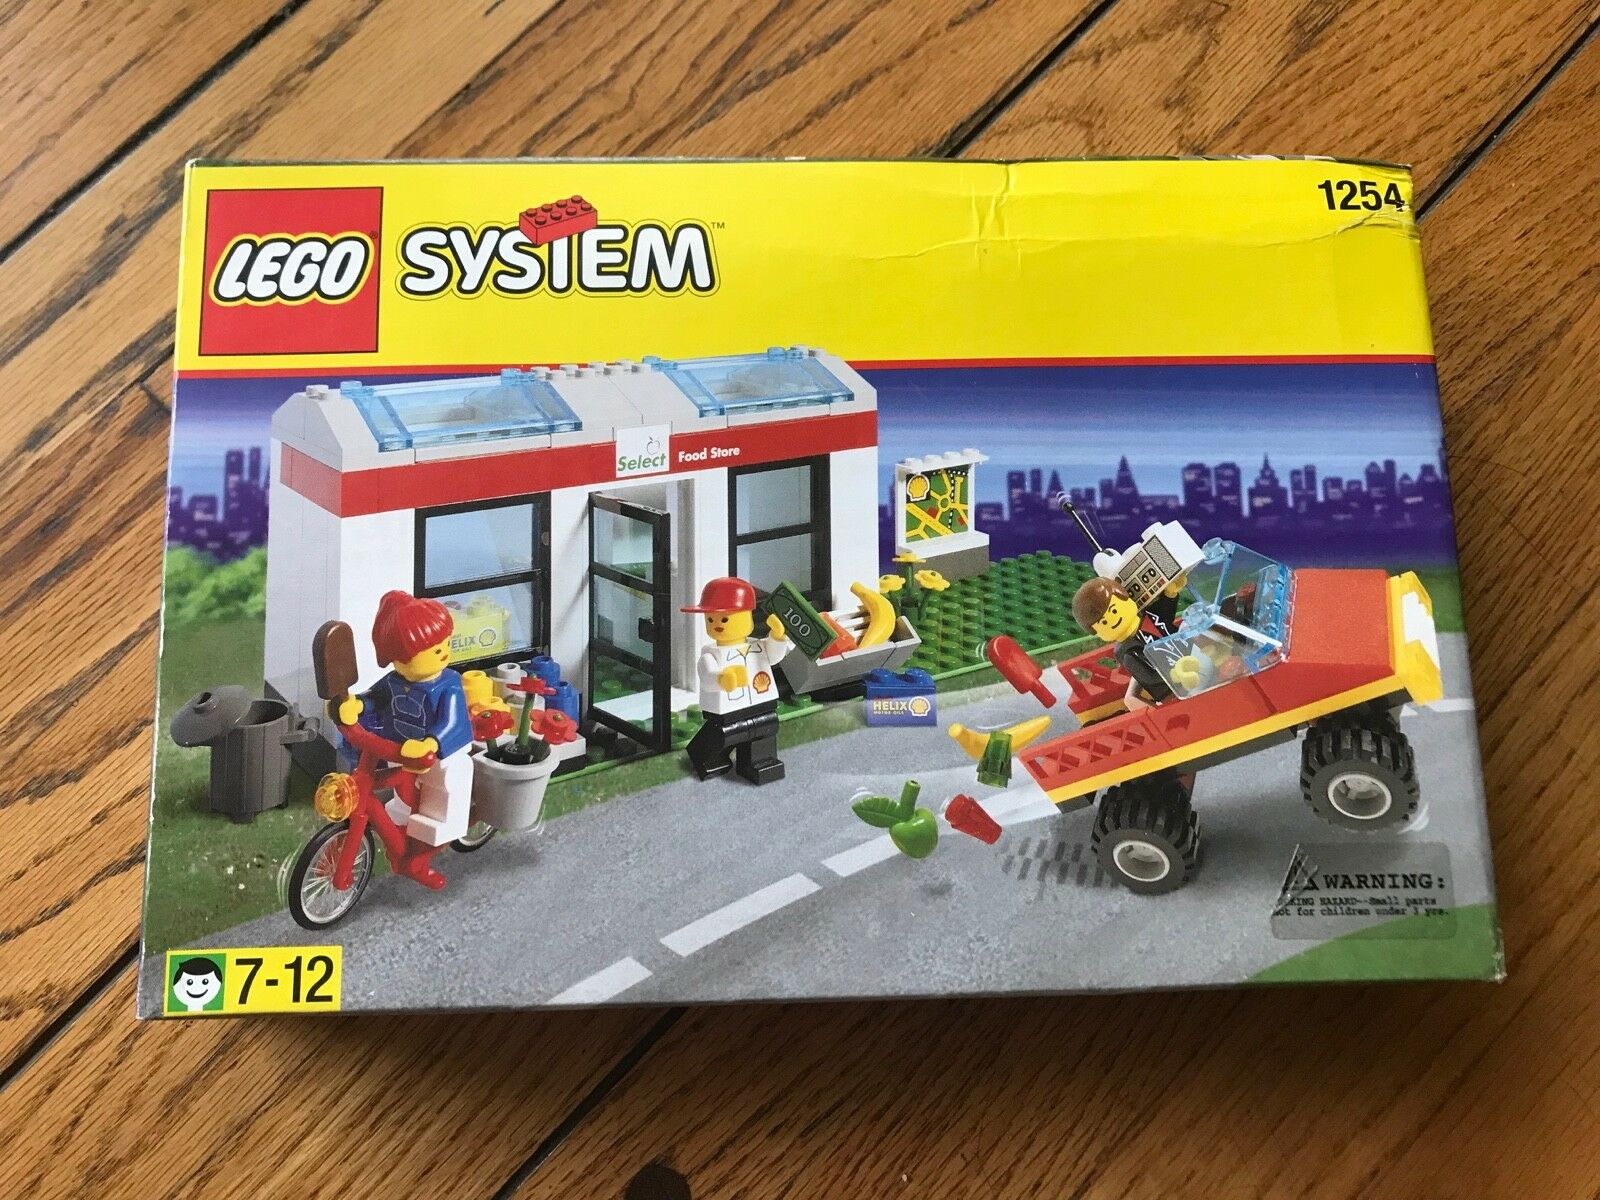 BRAND NEW Lego Shell Convenience Store 1254